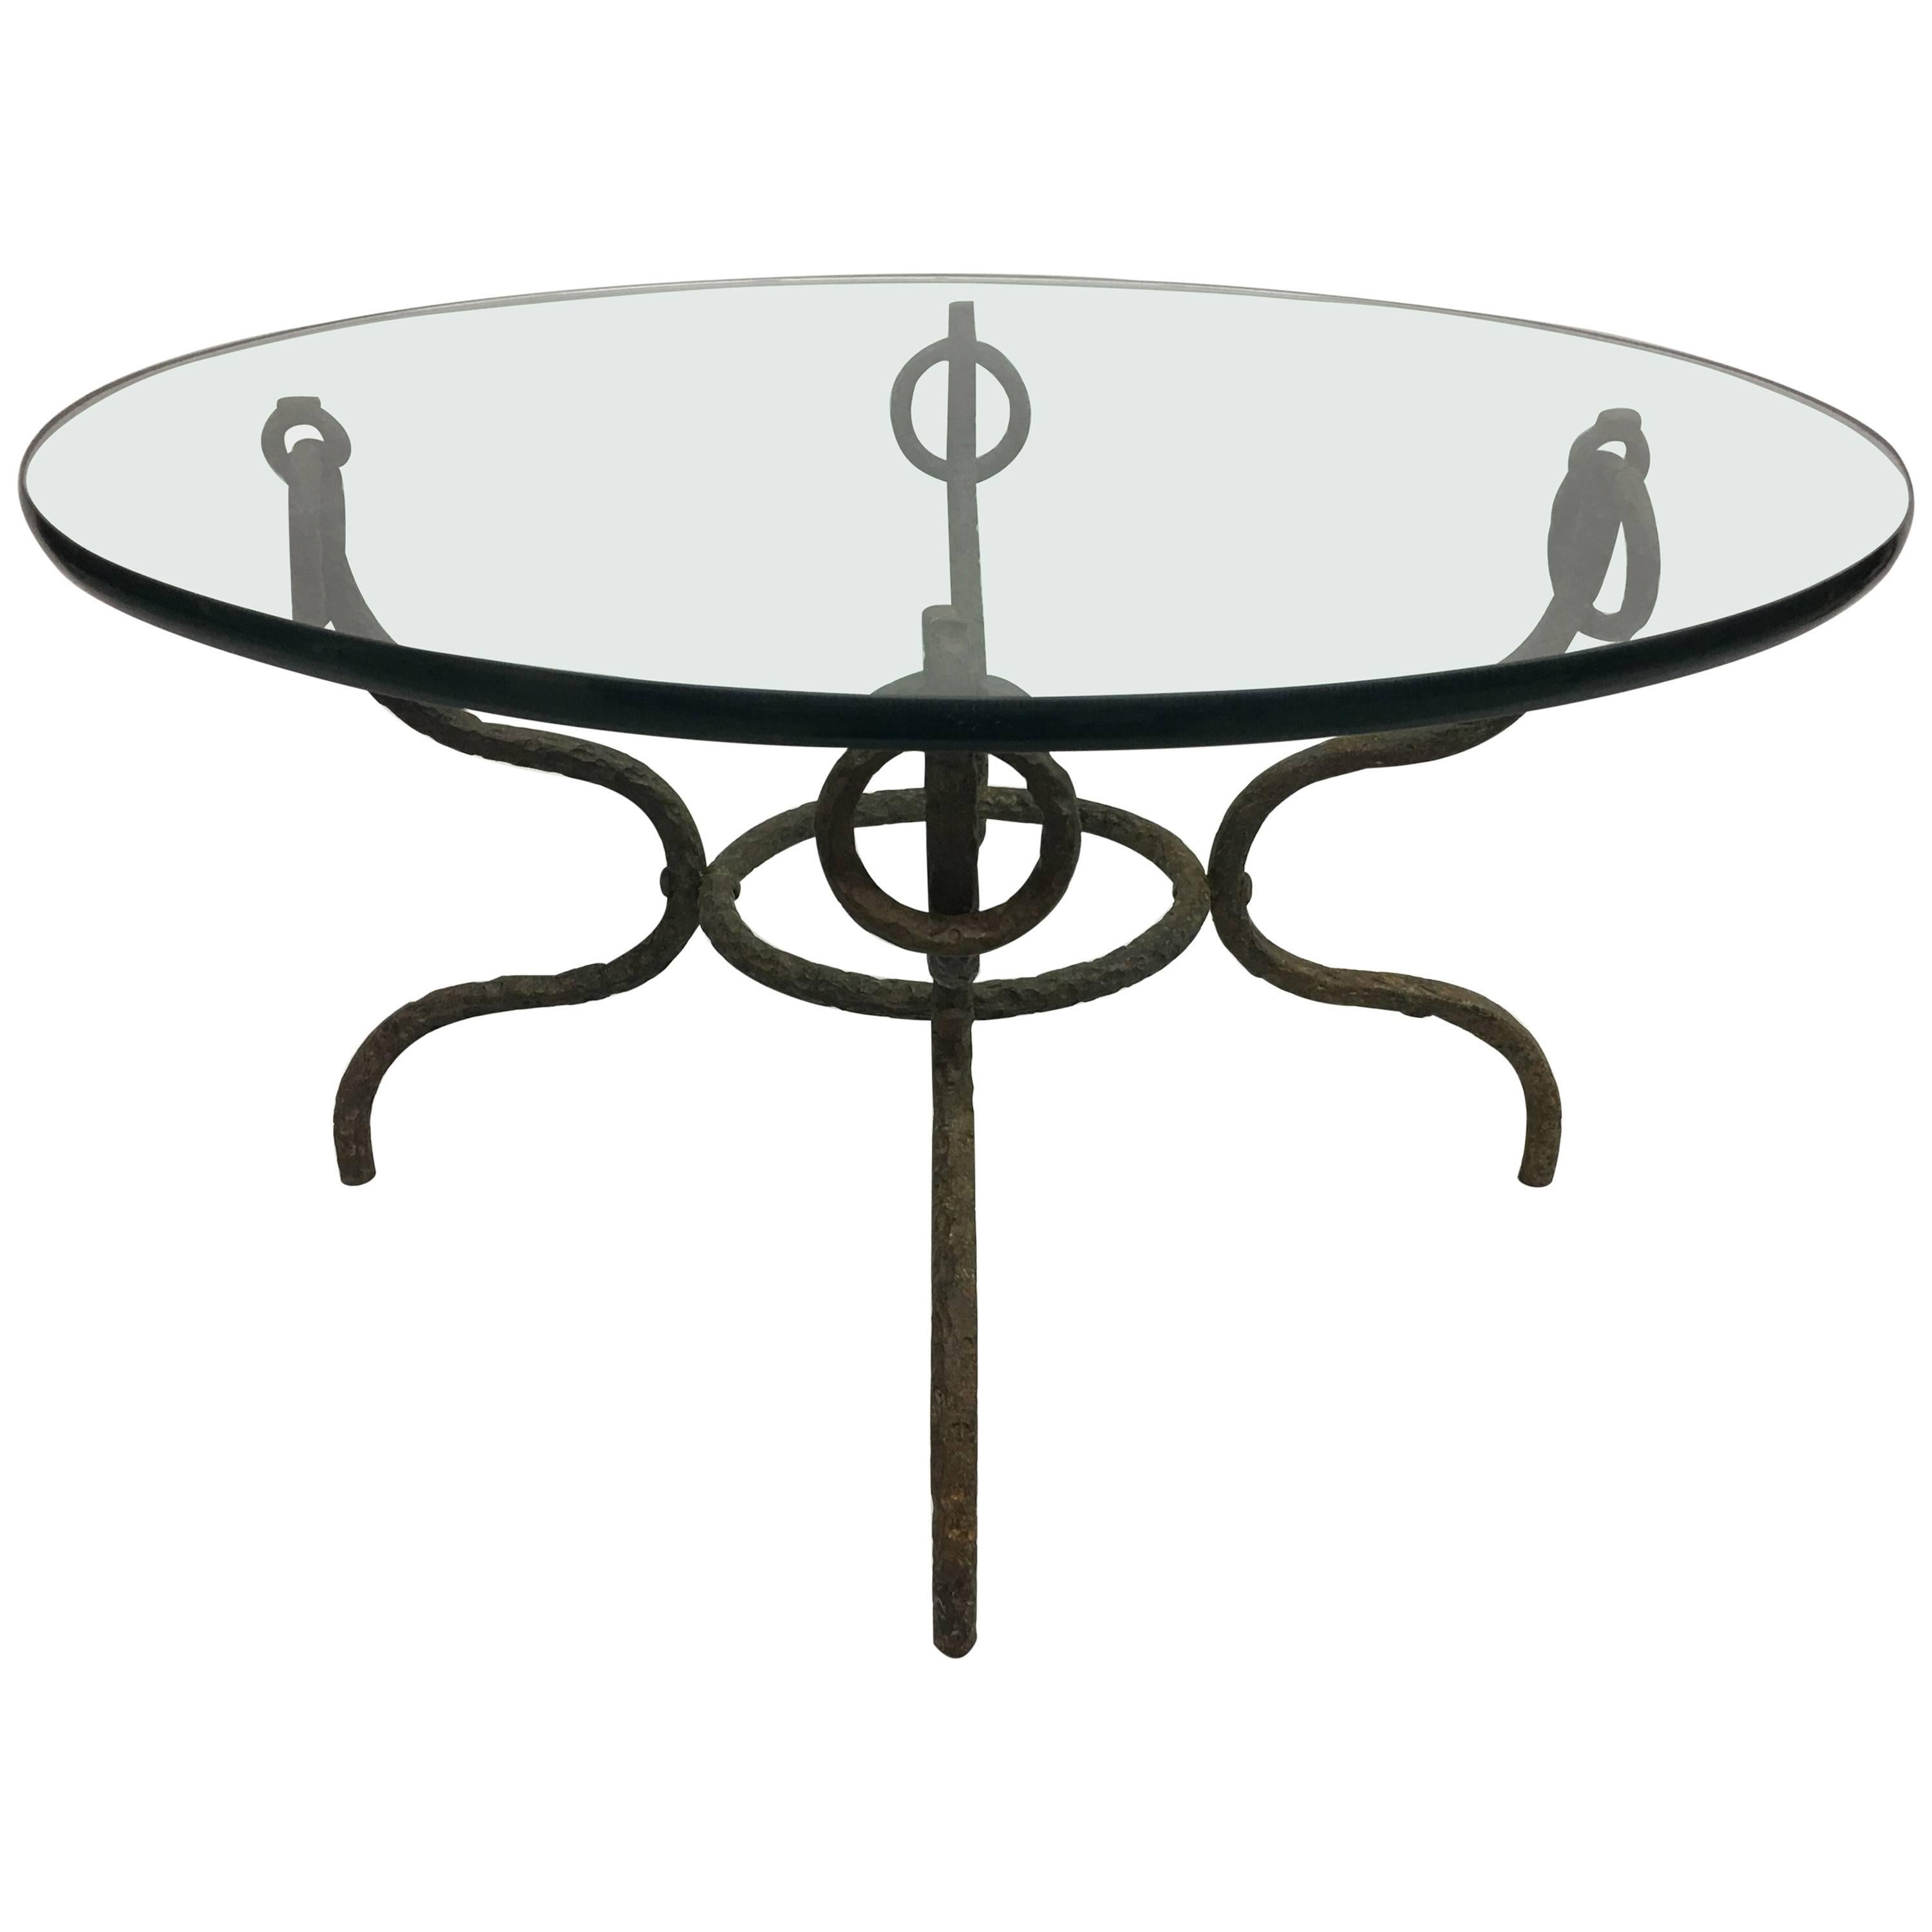 French Mid-Century Hammered Iron / Bronze Coffee Table, Style Giacometti